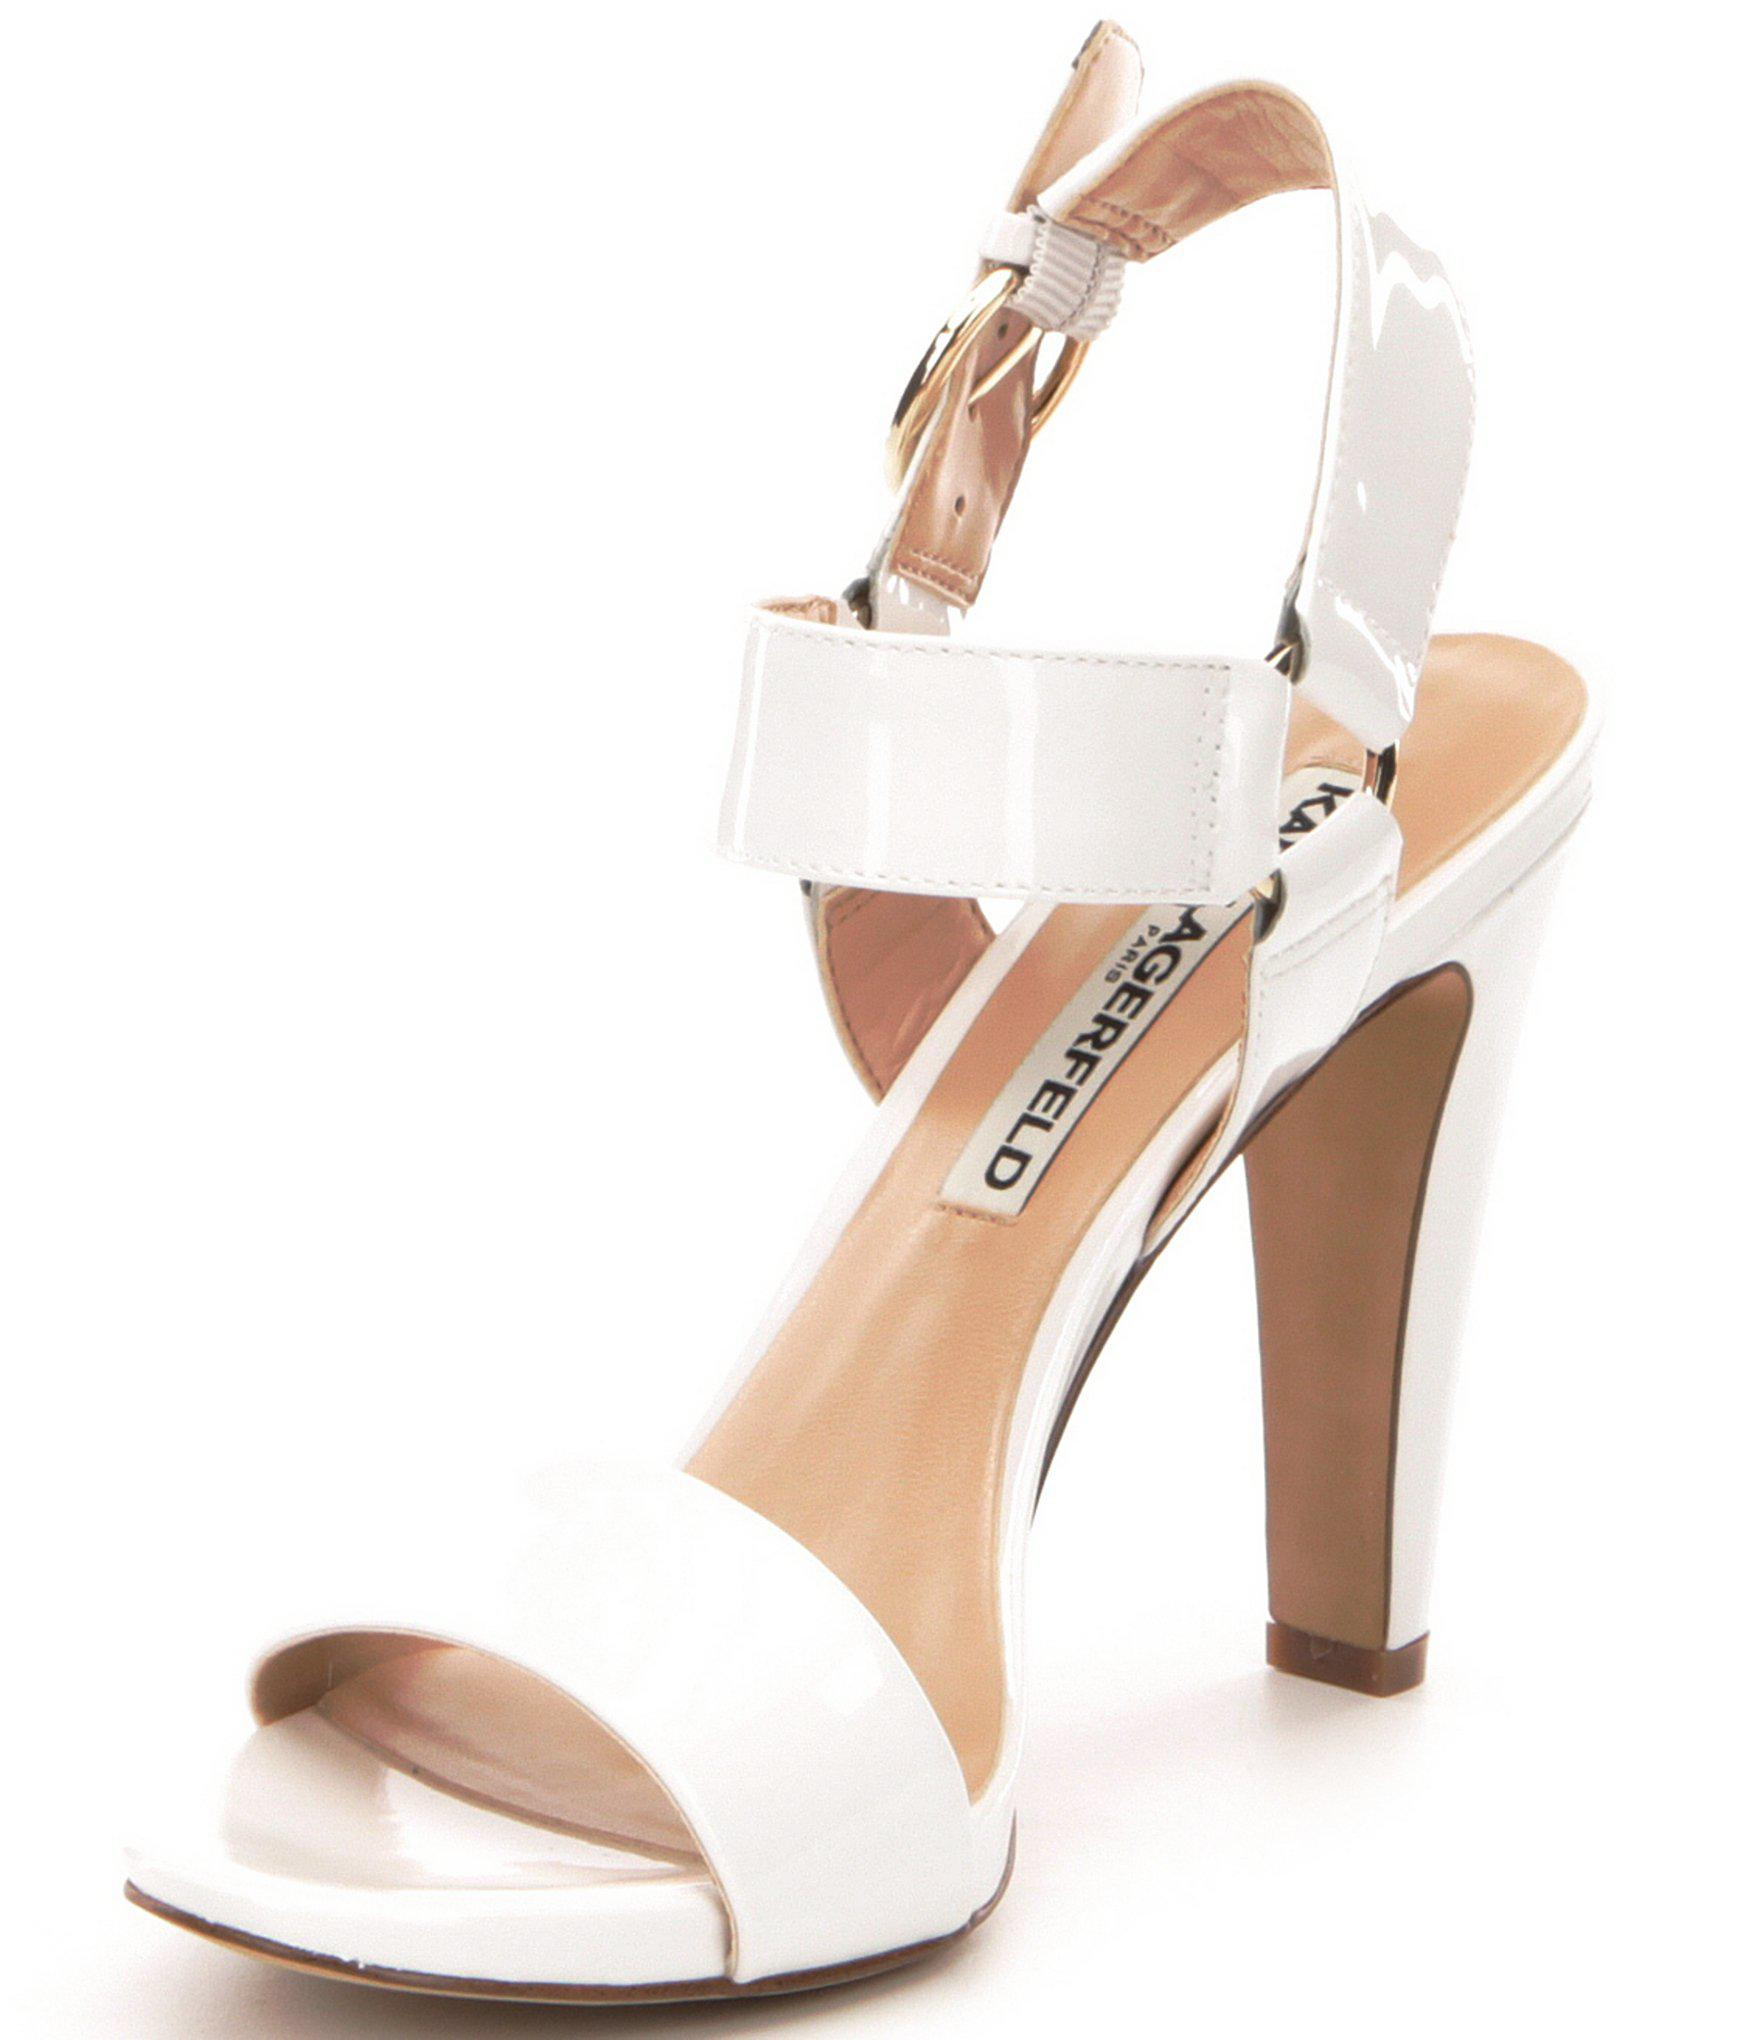 1d2f66f2a24 Lyst - Karl Lagerfeld Cieone Ankle Strap Patent Leather Dress ...